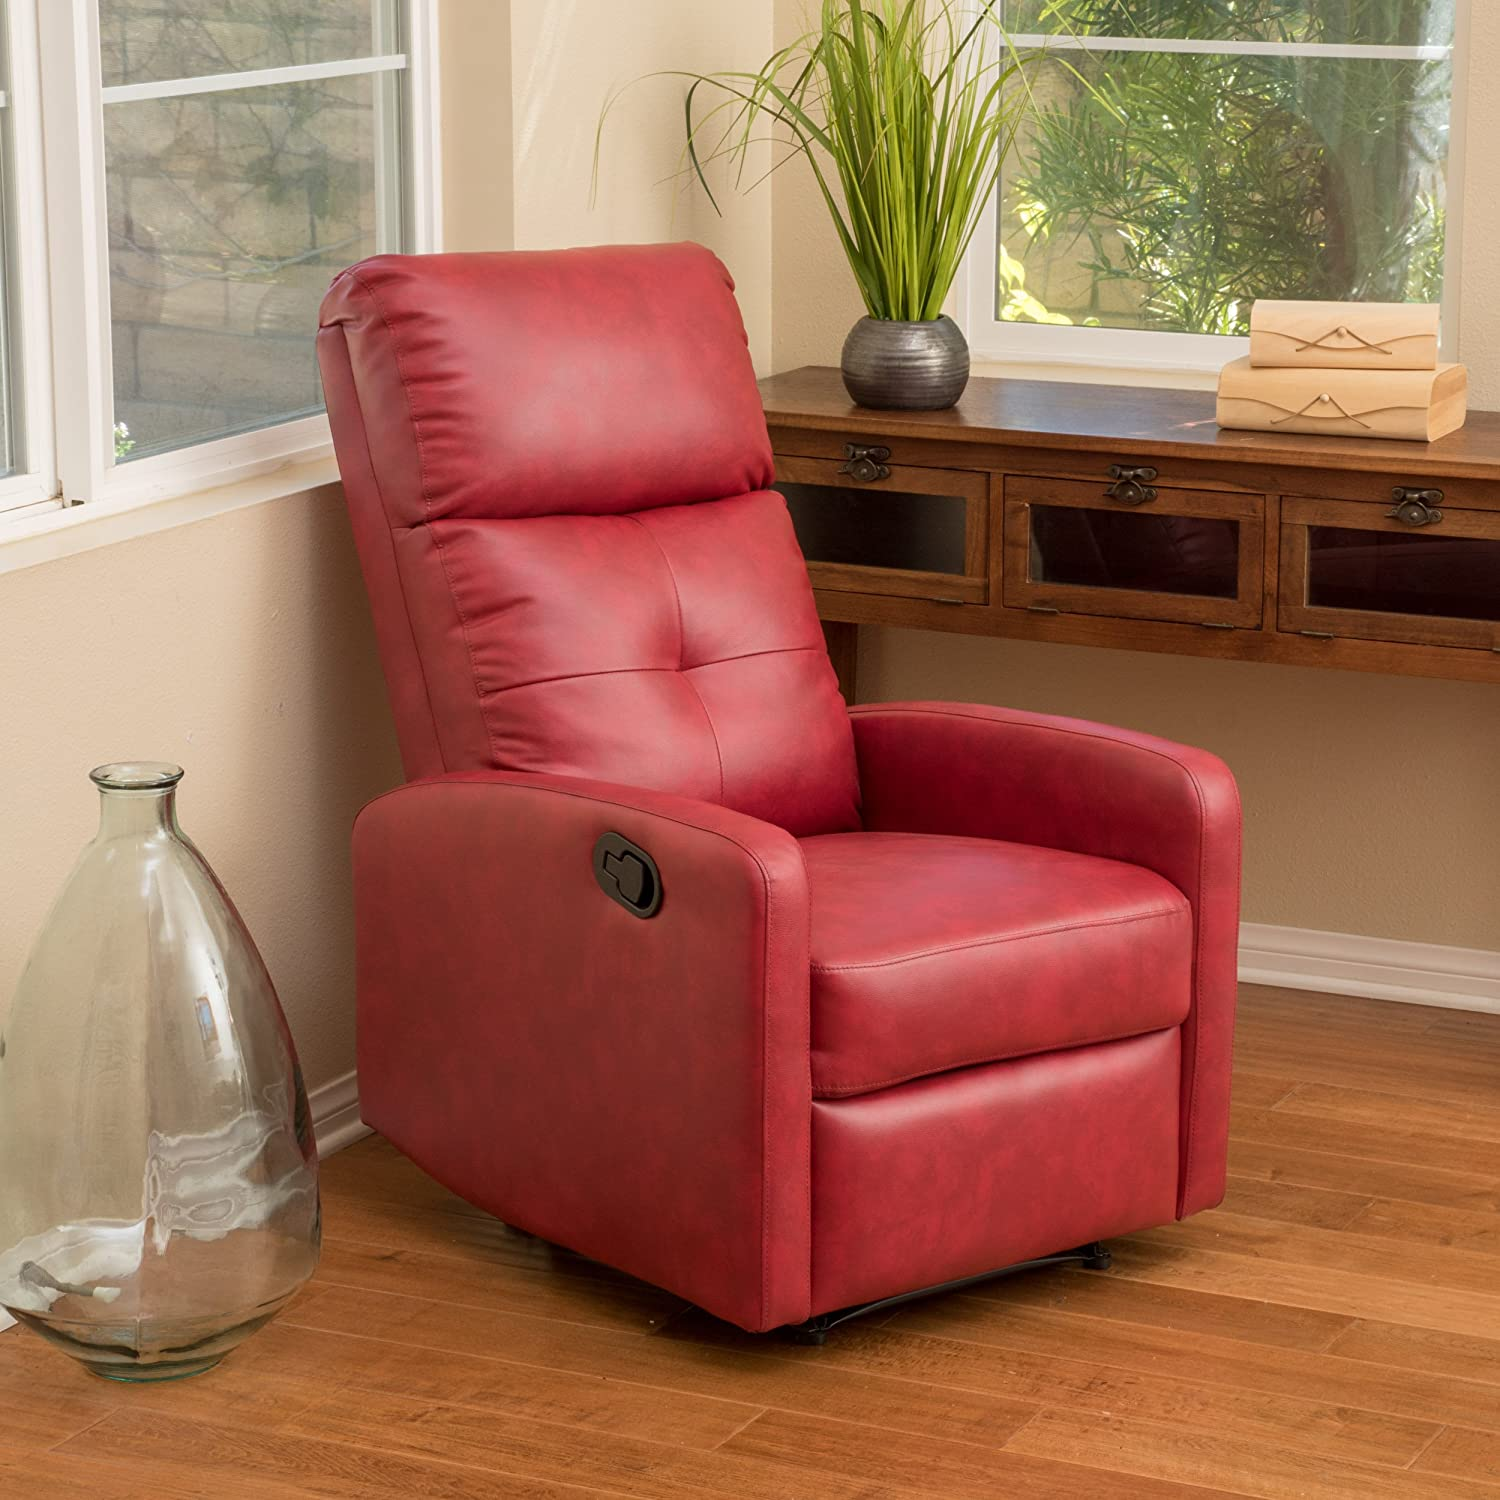 Amazon Teyana Red Leather Recliner Club Chair Kitchen & Dining